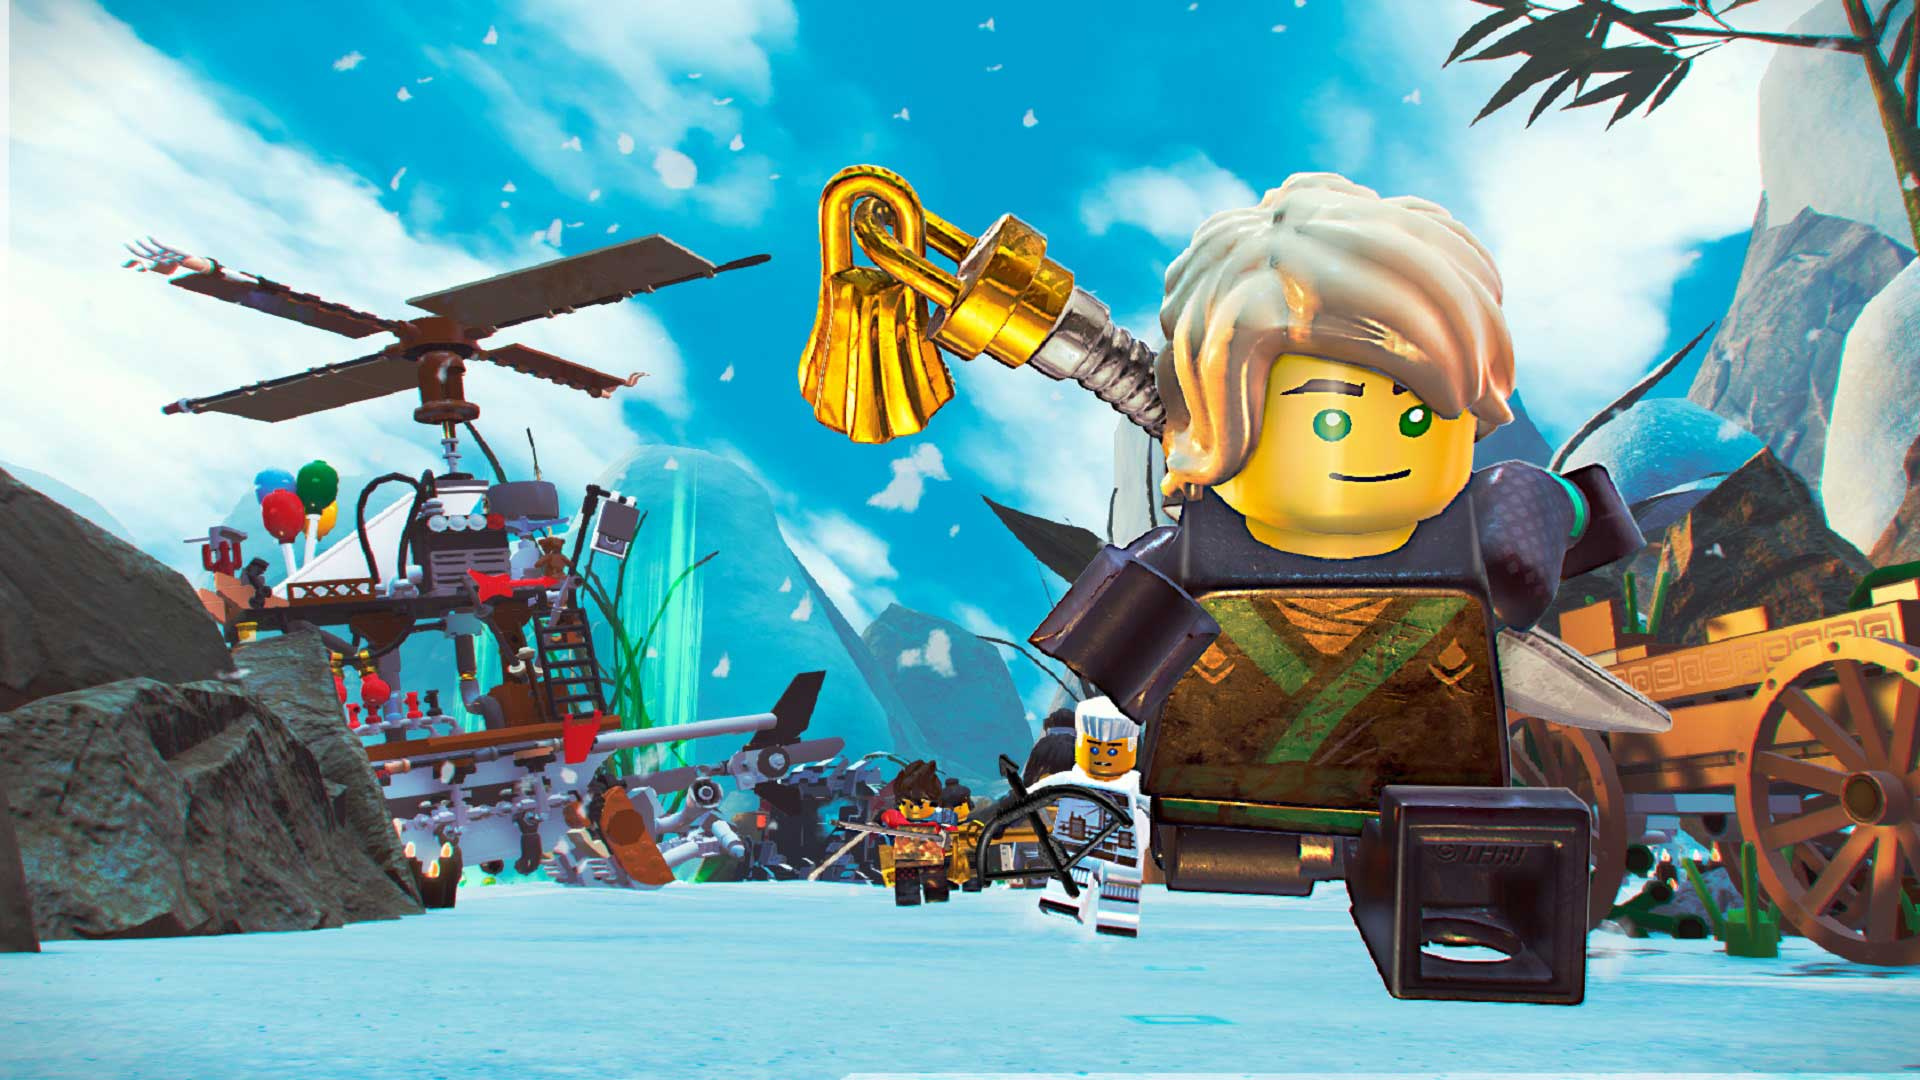 The Lego Ninjago Movie Video Game is free to download and keep